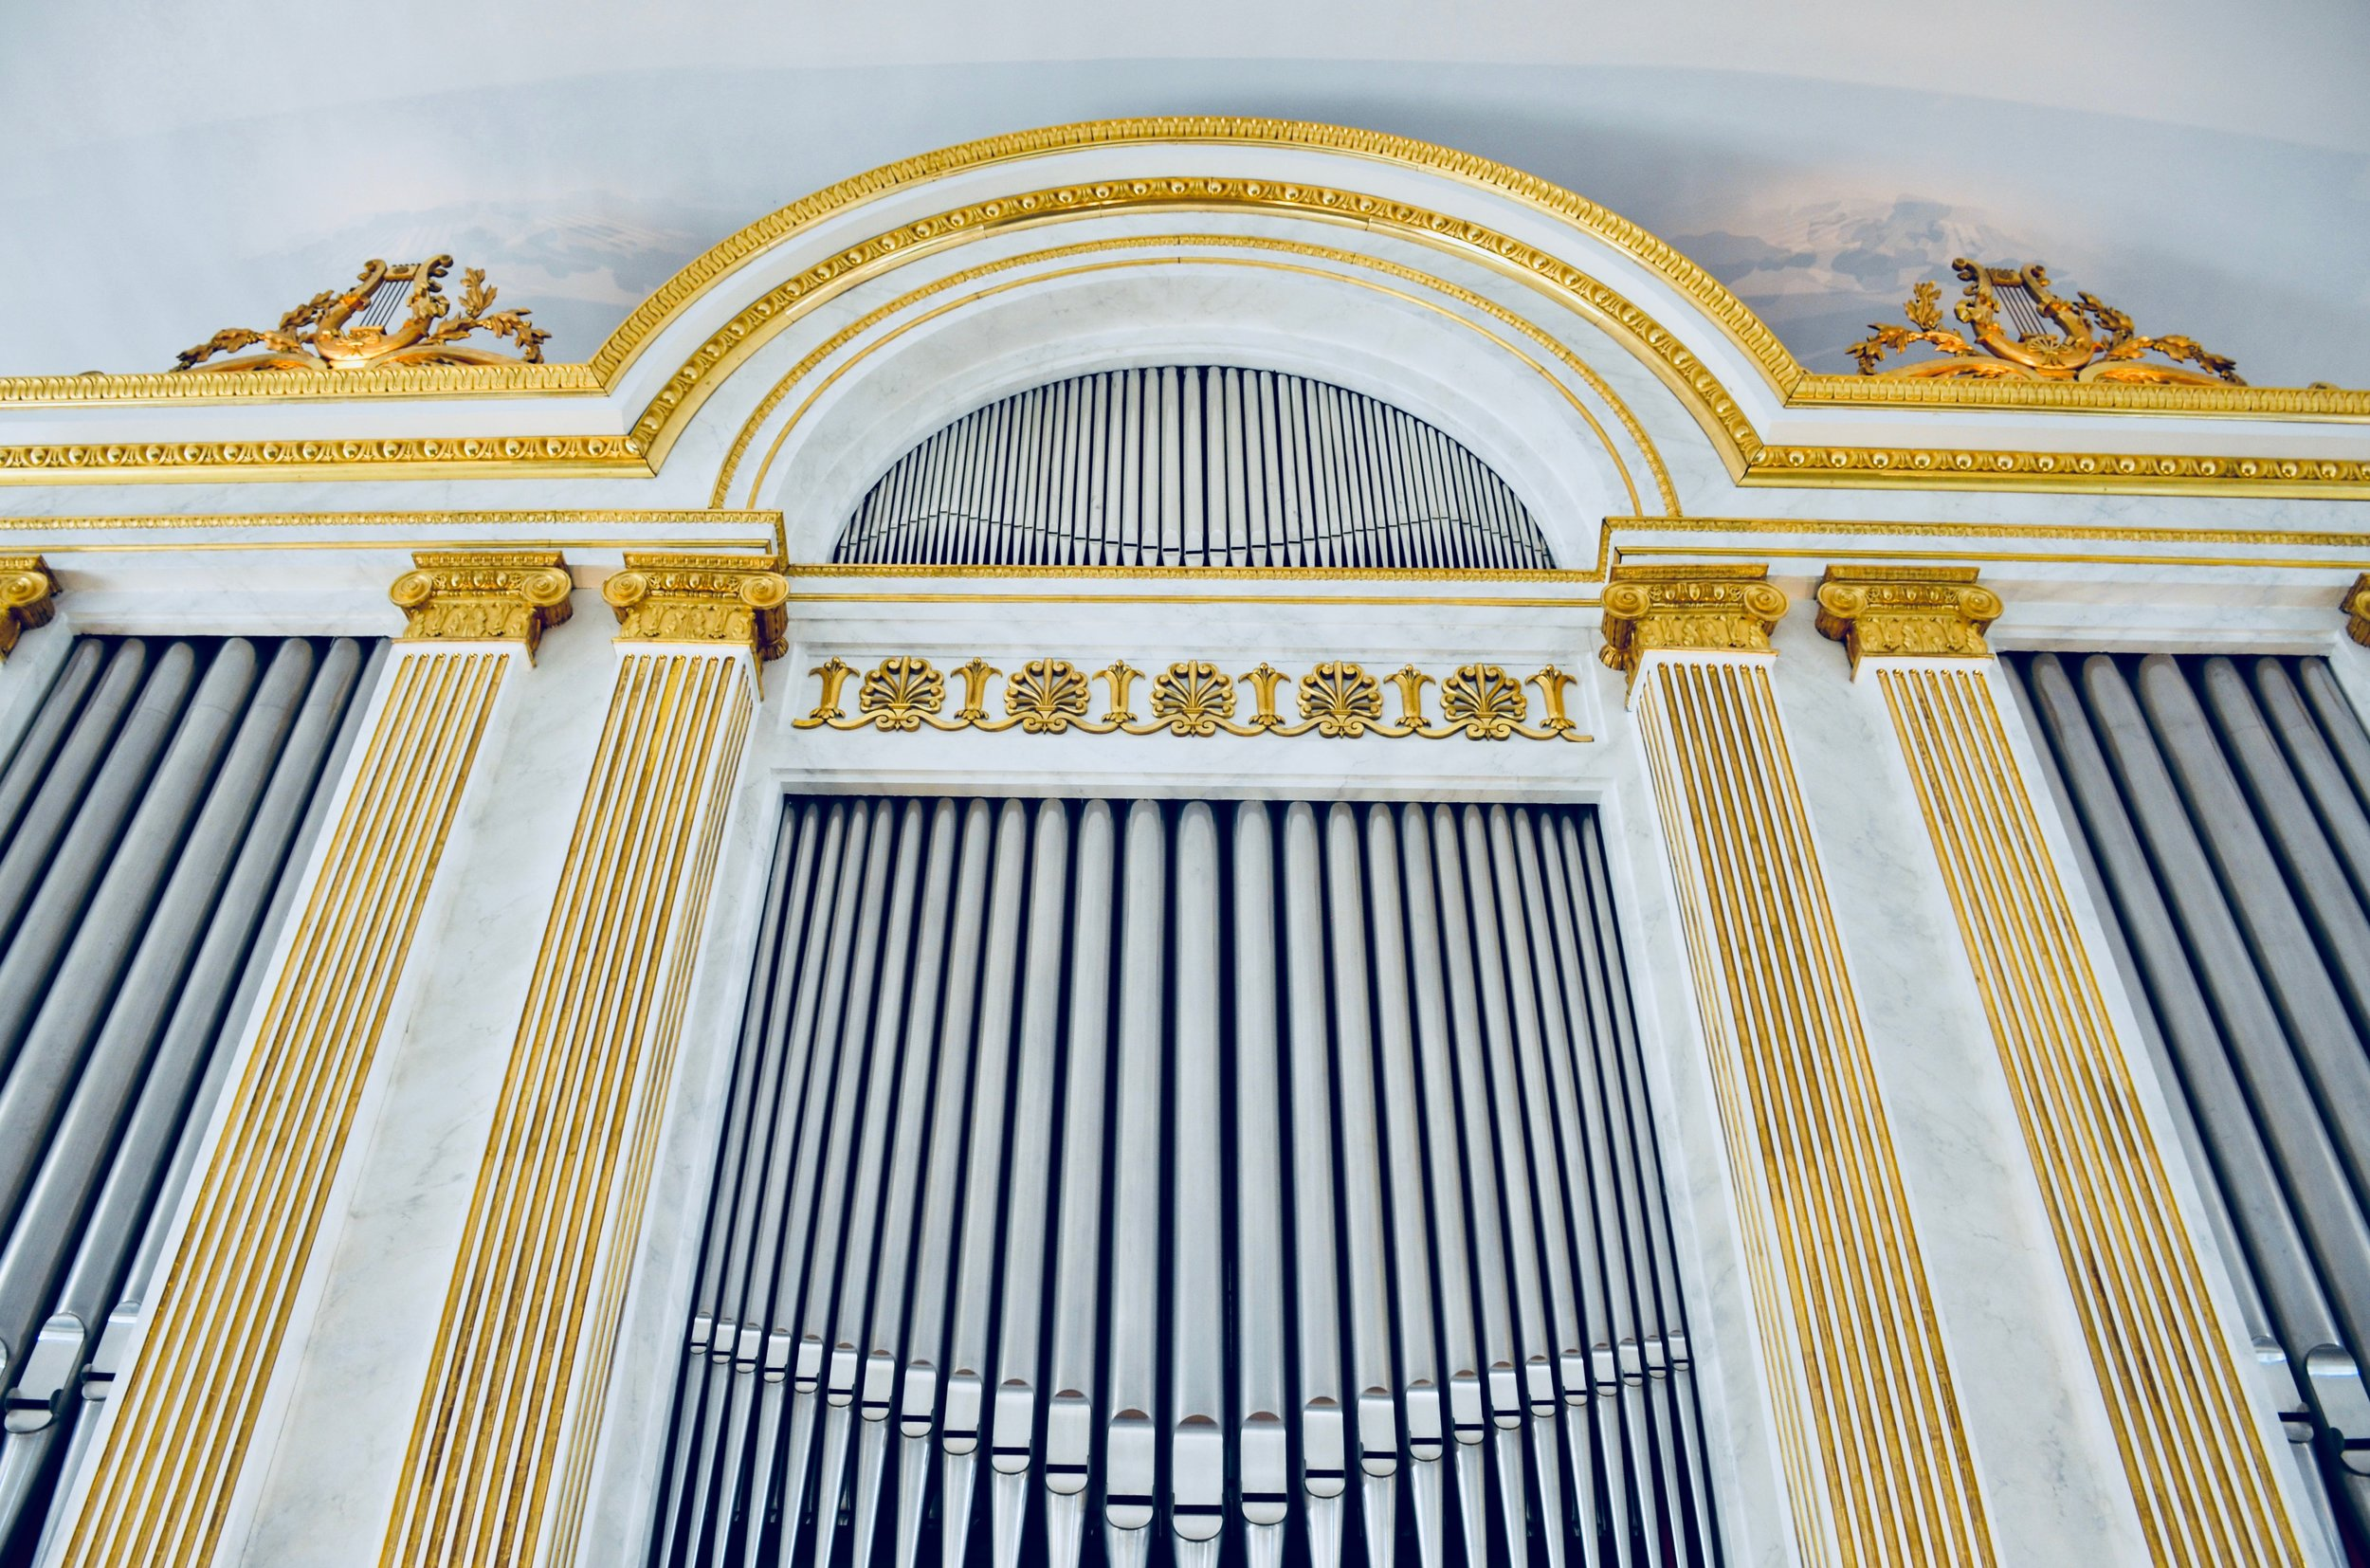 The façade of the Magnusson organ in Göteborg Cathedral.